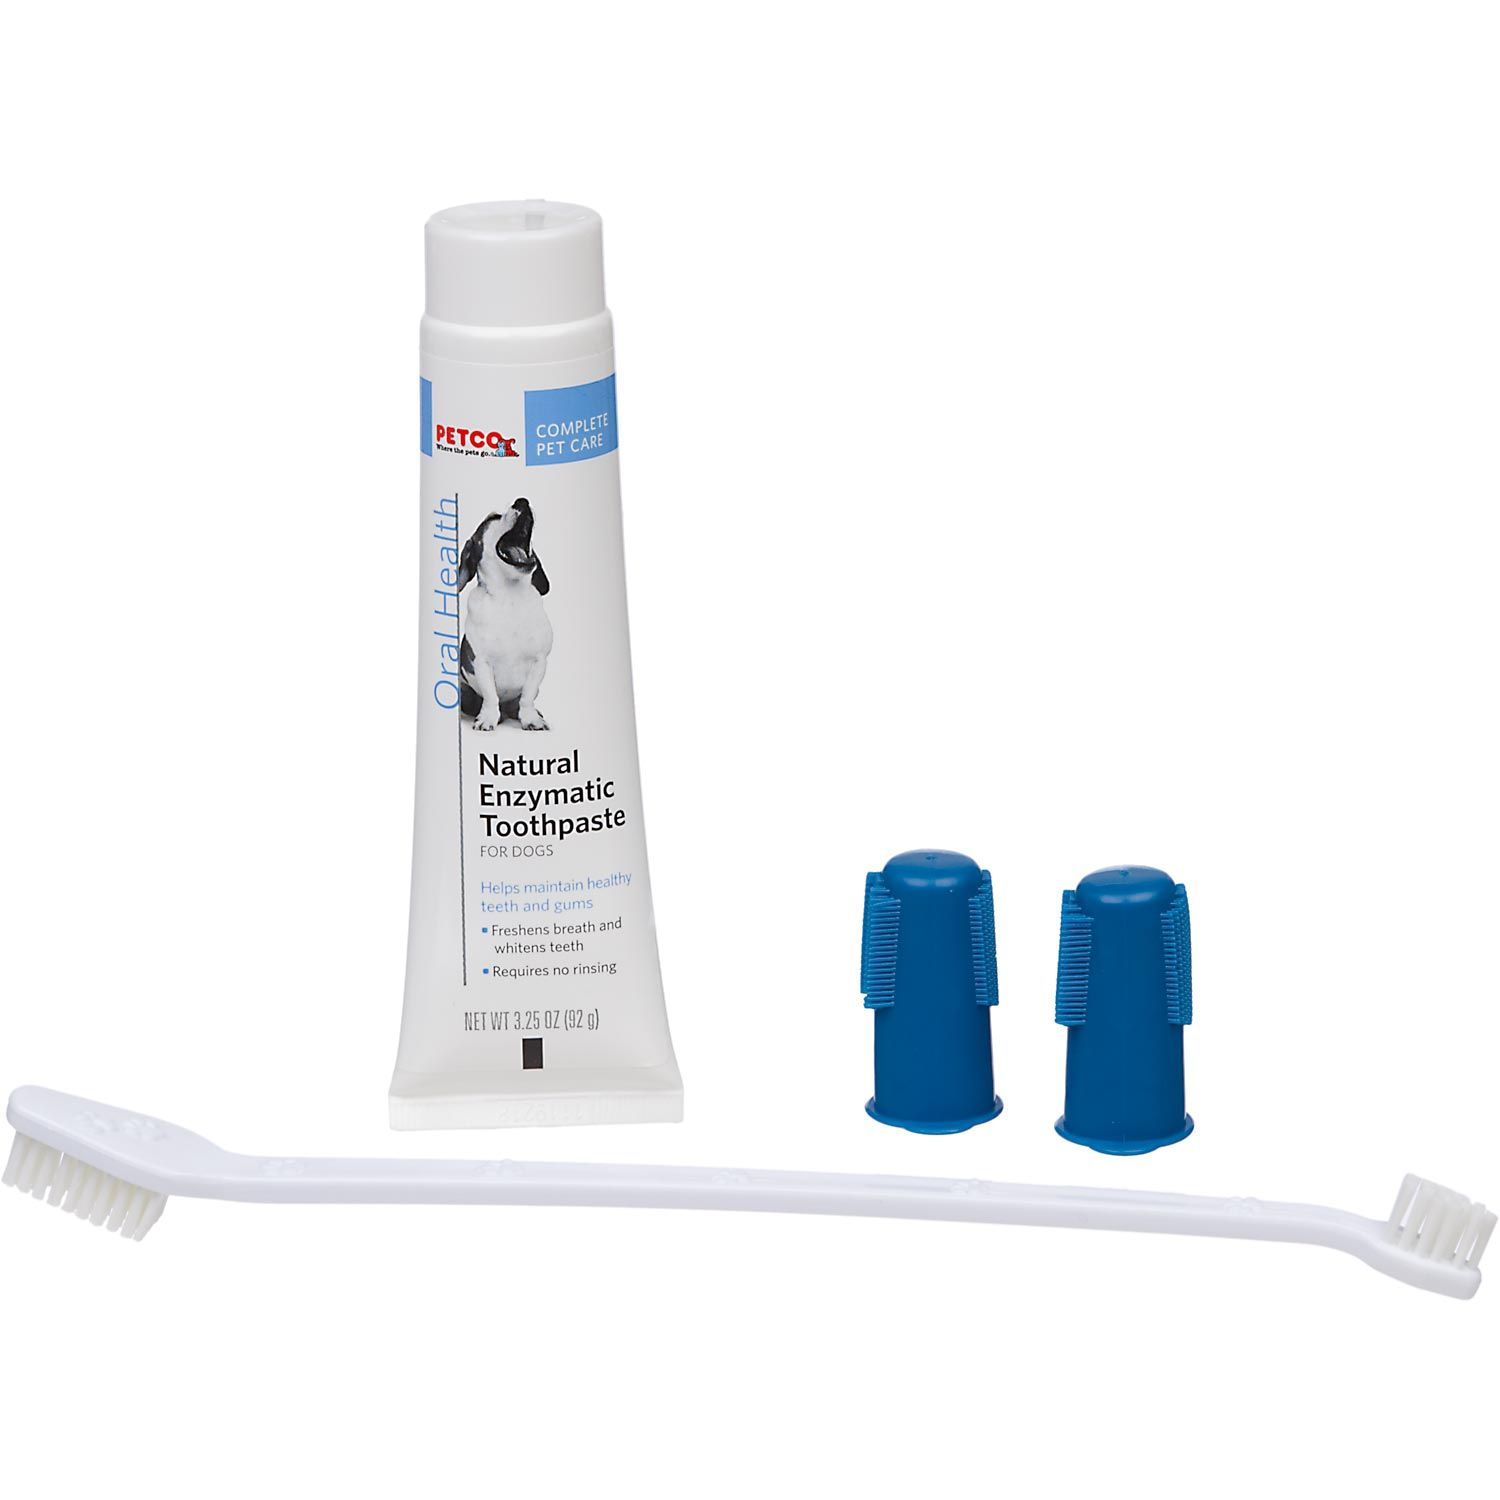 Petco Natural Dental Health Kit for Dogs Petco dog